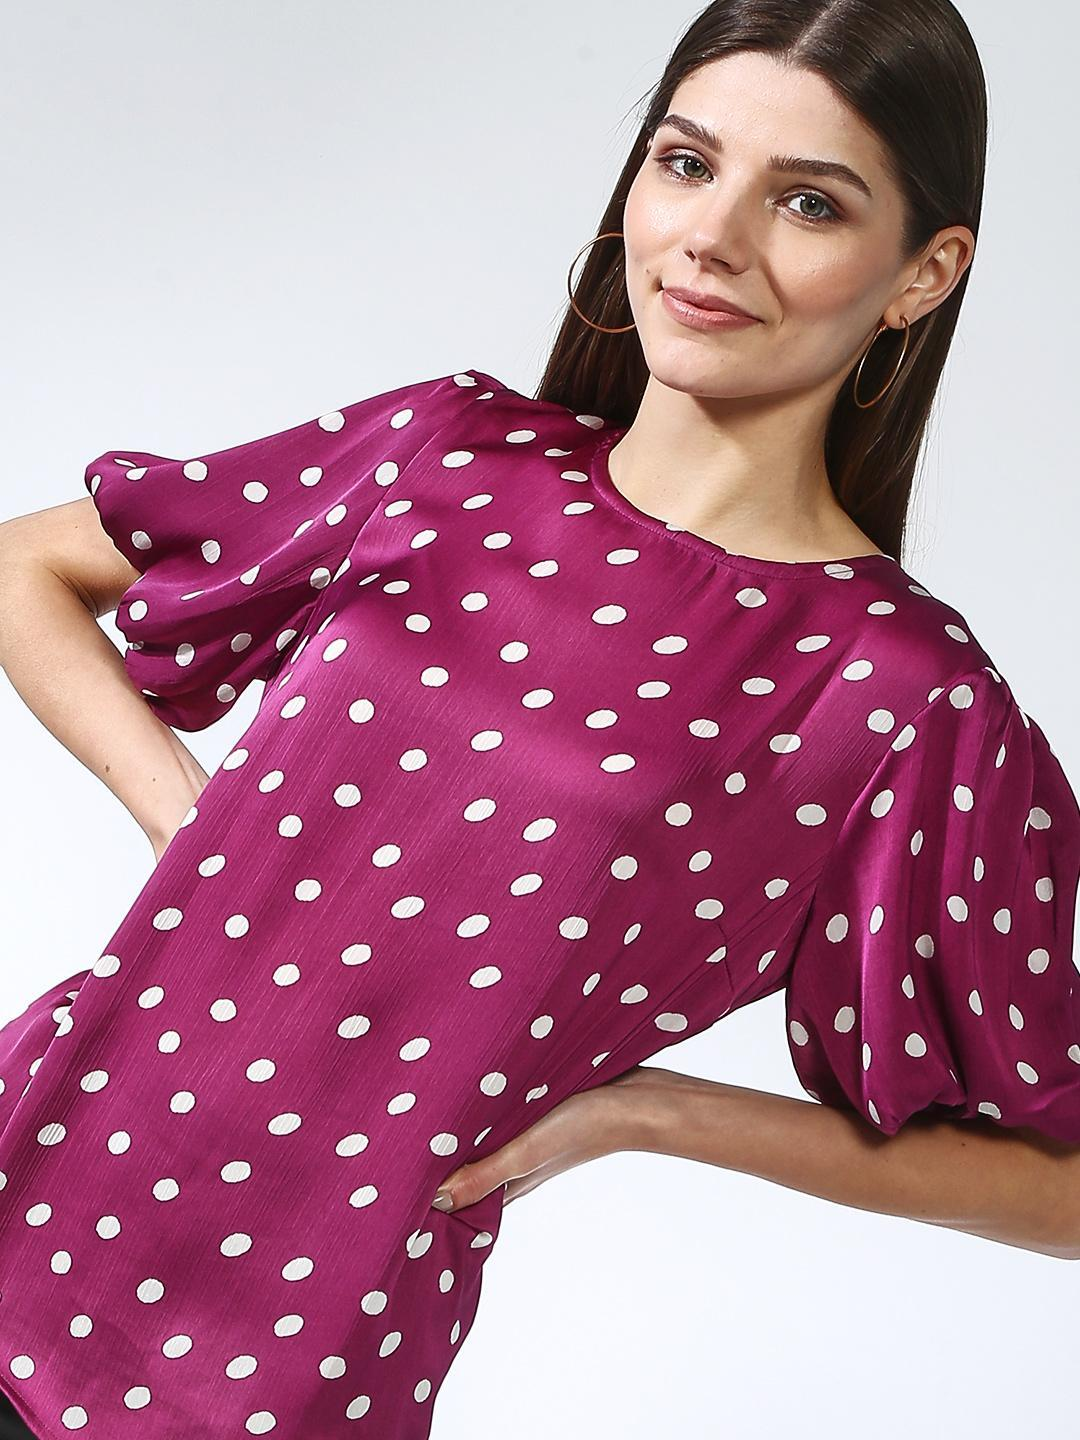 Oxolloxo Pink Polka Dot Relaxed Fit Blouse 1